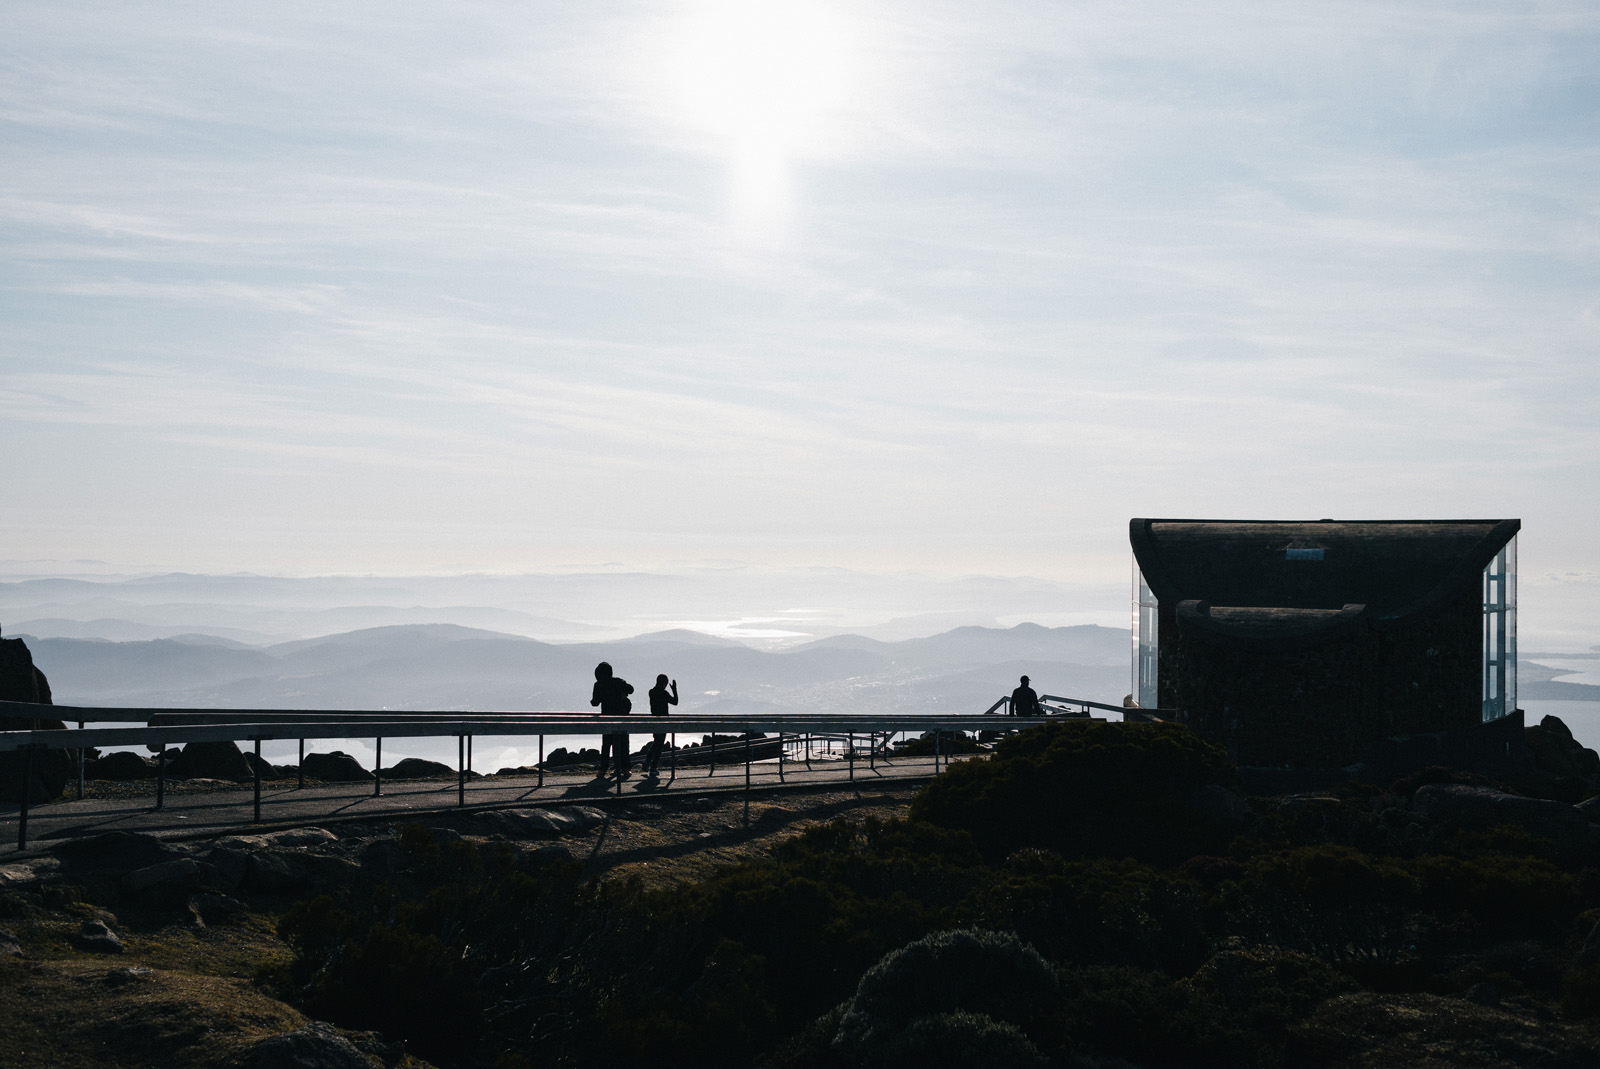 20150913_TasmaniaRoadtrip_082542-Nick-Bedford,-Photographer-Alpine, Australia, kunanyi, Leica M Typ 240, Mount Wellington, Road Trip, Summarit 35mm, Tasmania, Travel, VSCO Film.jpg